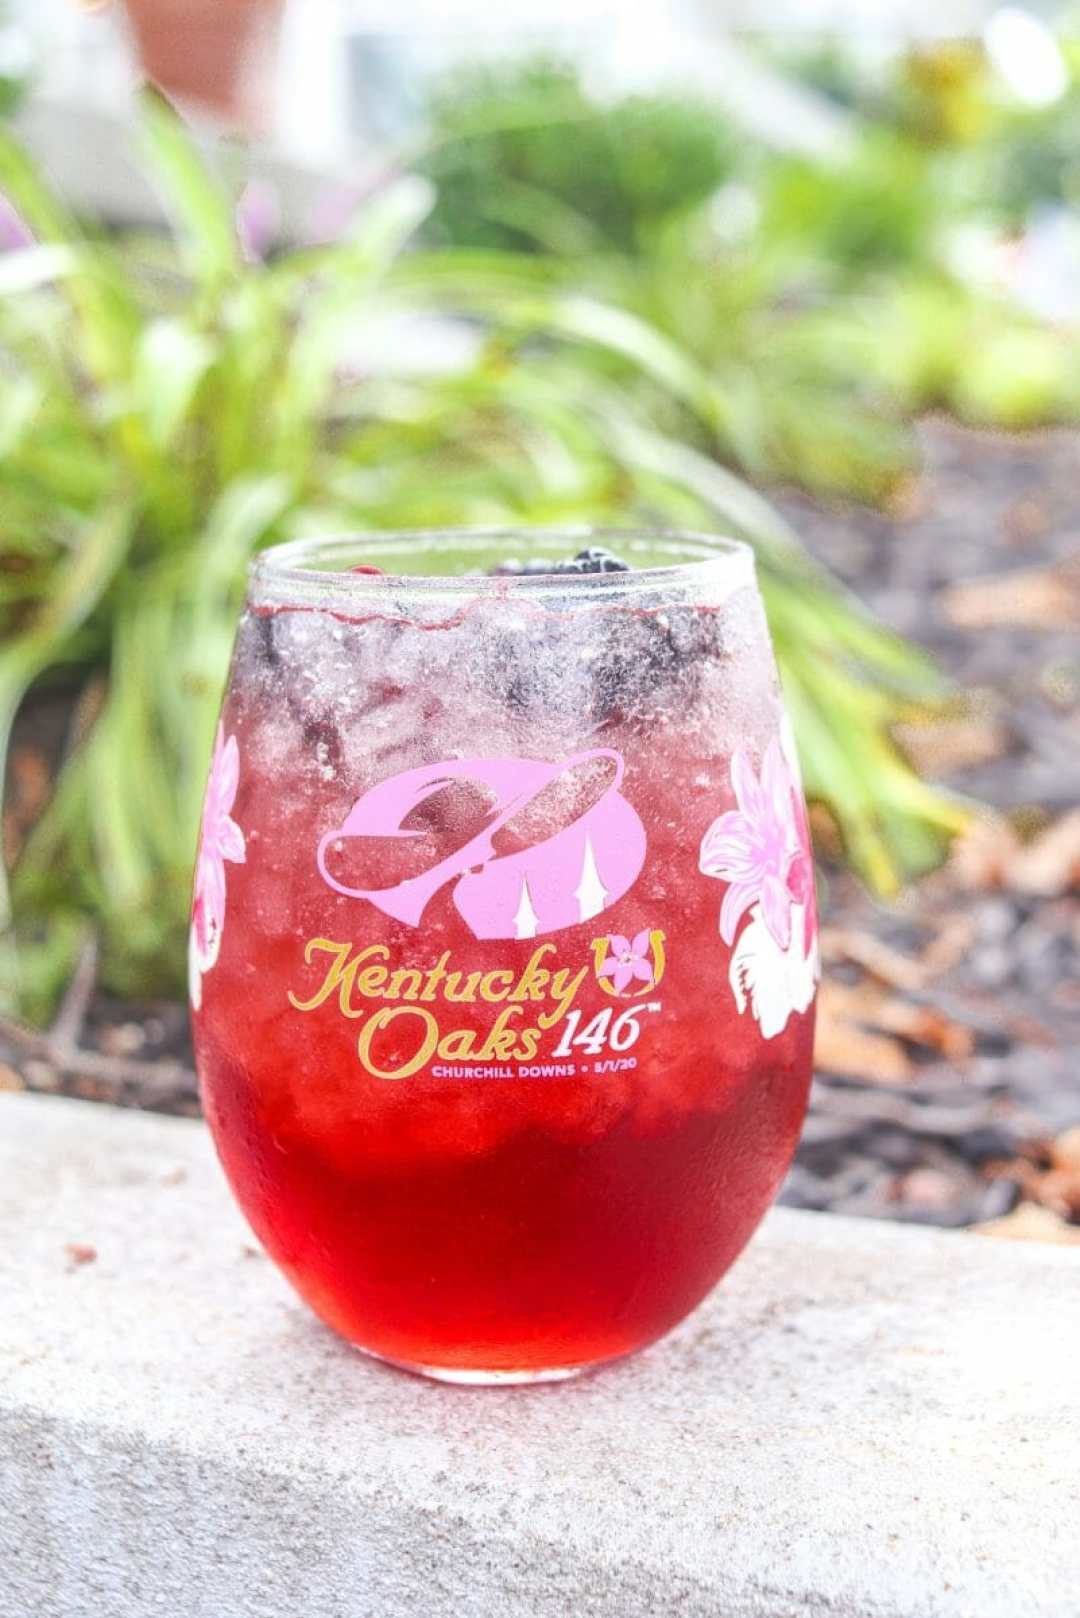 Lily® Cocktail Recipe: The Drink of the 2020 Kentucky Oaks